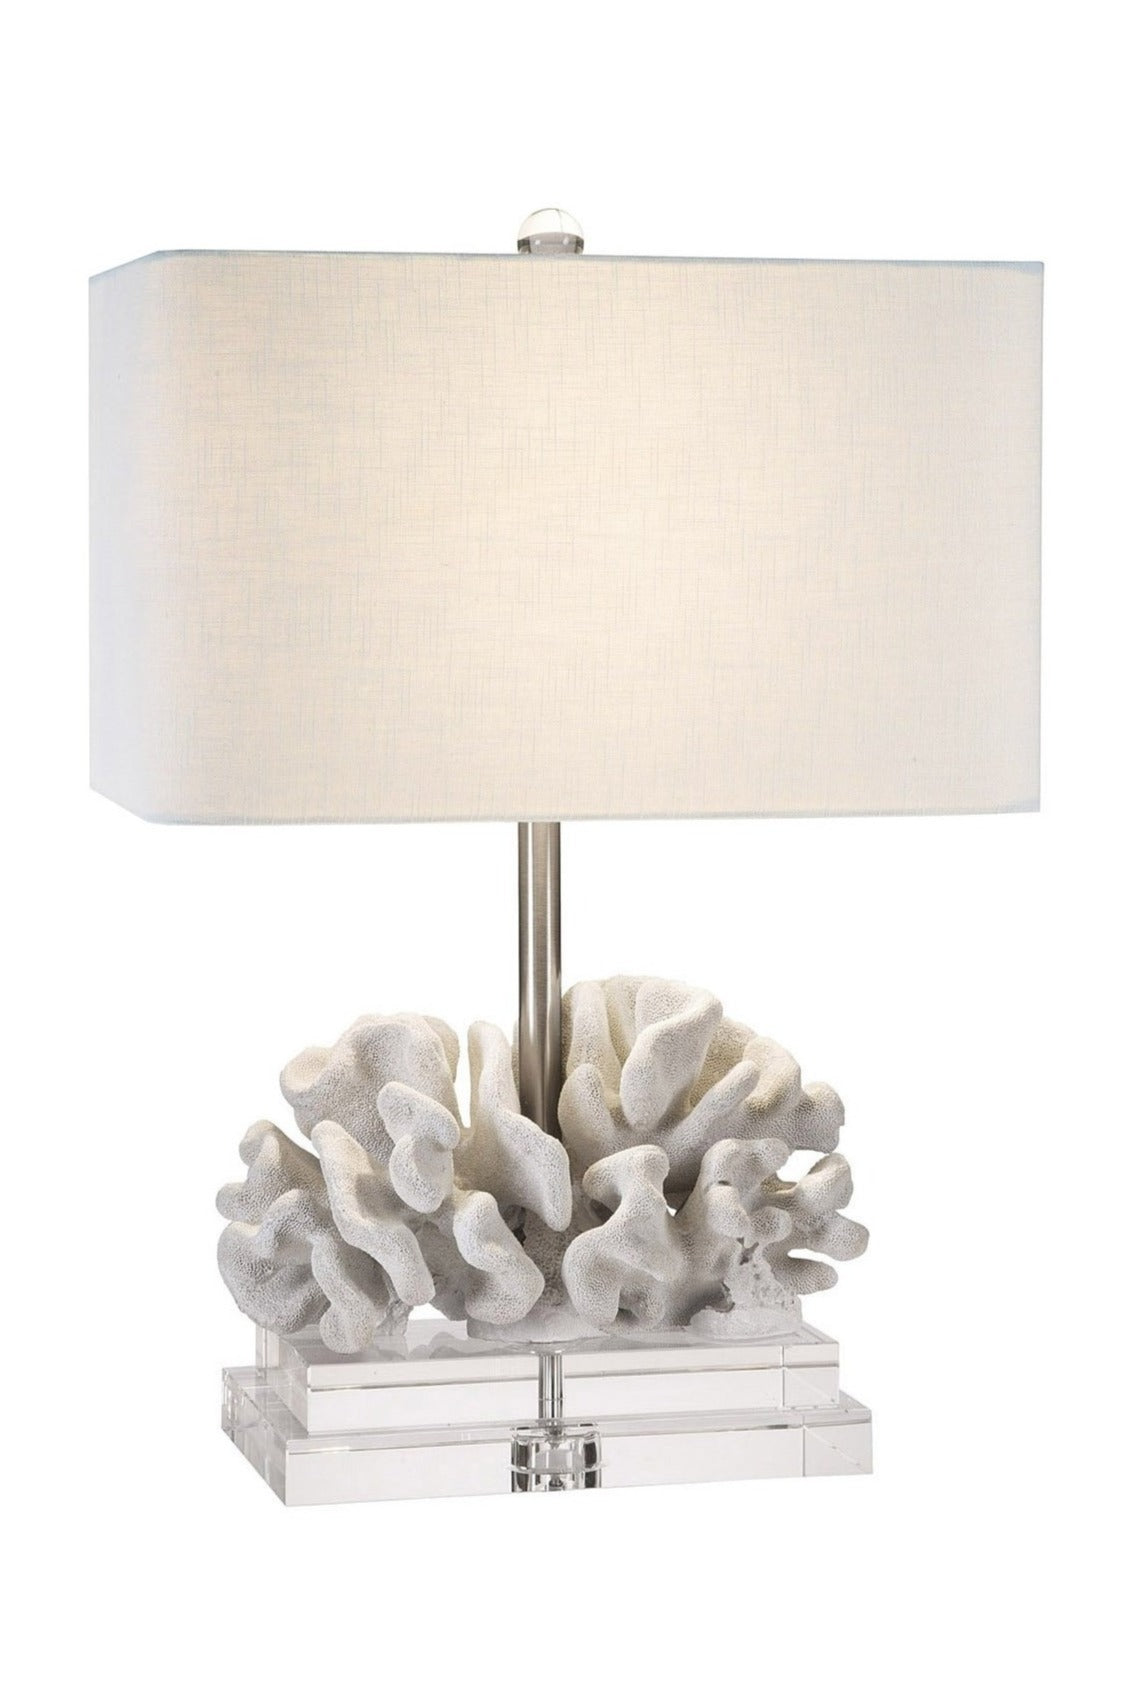 "Elkhorn Coral 22"" Table Lamp - Couture Lamps"